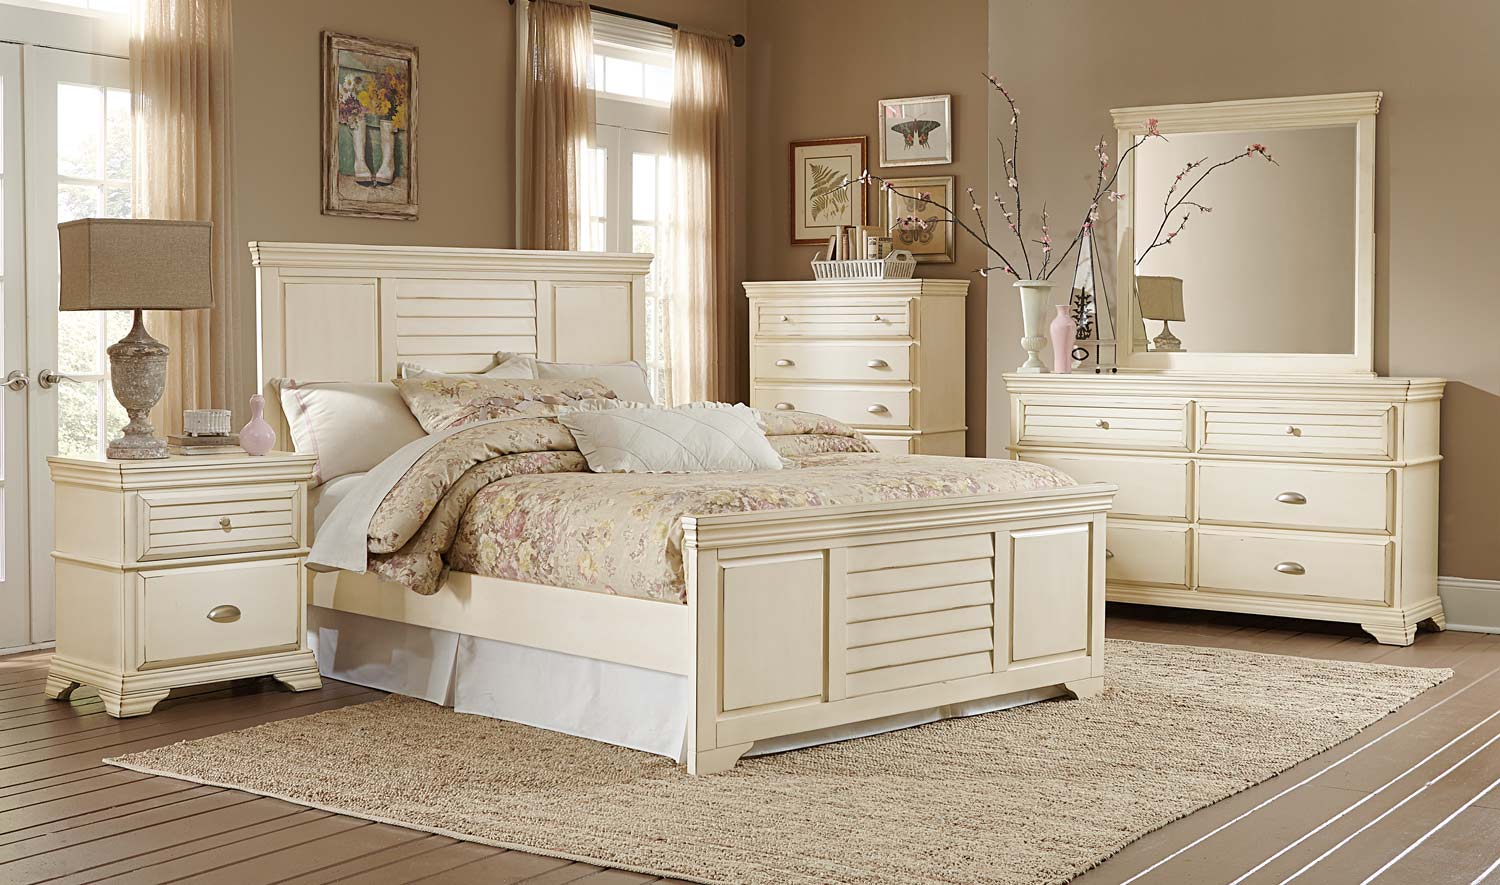 Homelegance laurinda bedroom set antique white 1846 for H plan bedroom furniture